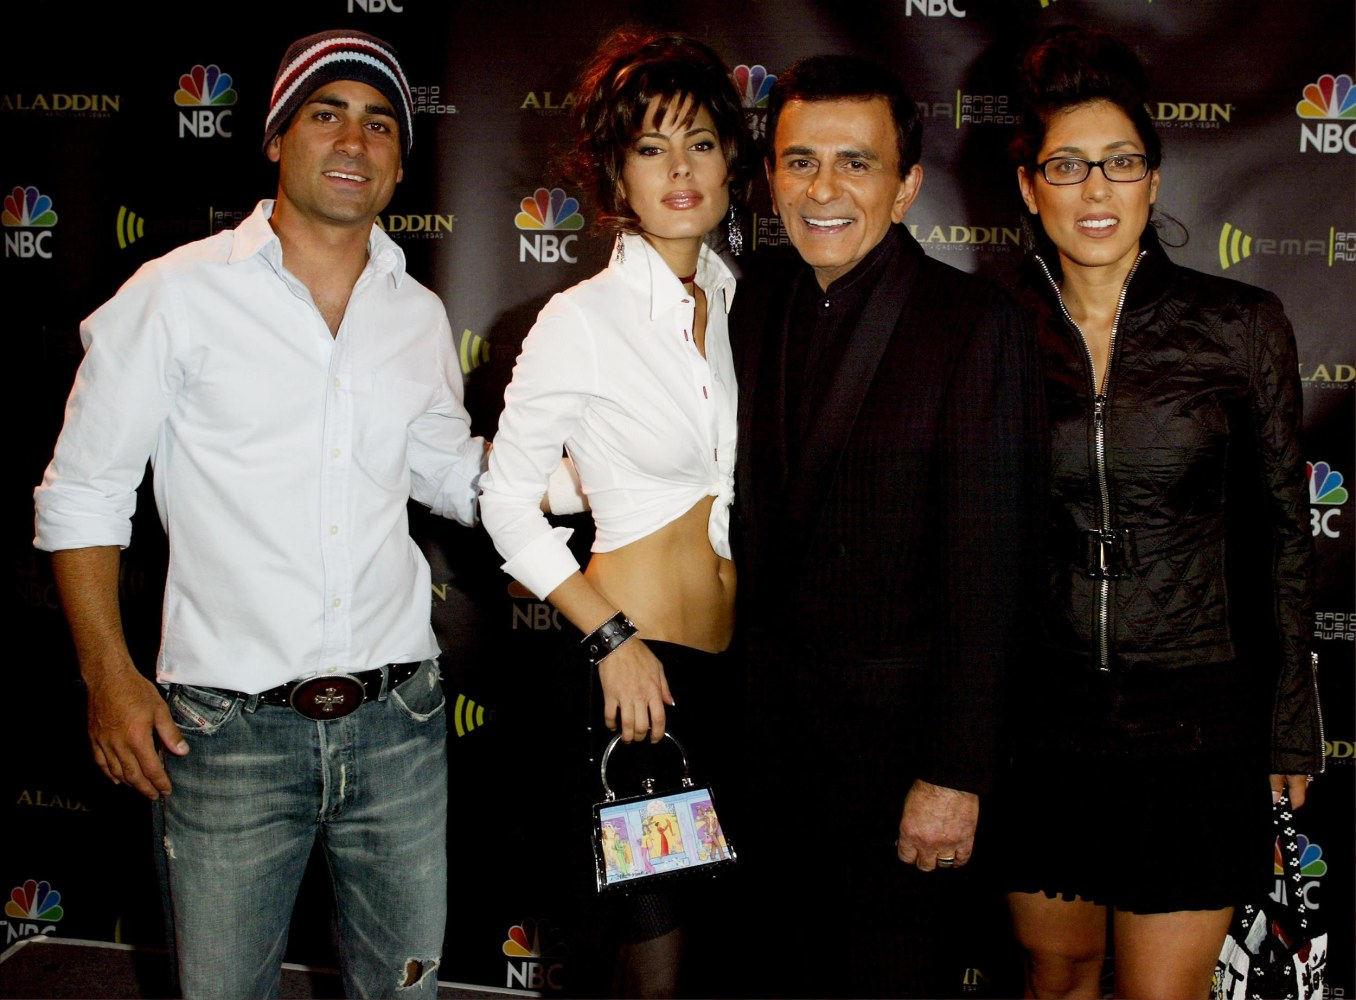 Casey Kasem's Wife Jean at Center of Family Feud - NBC News